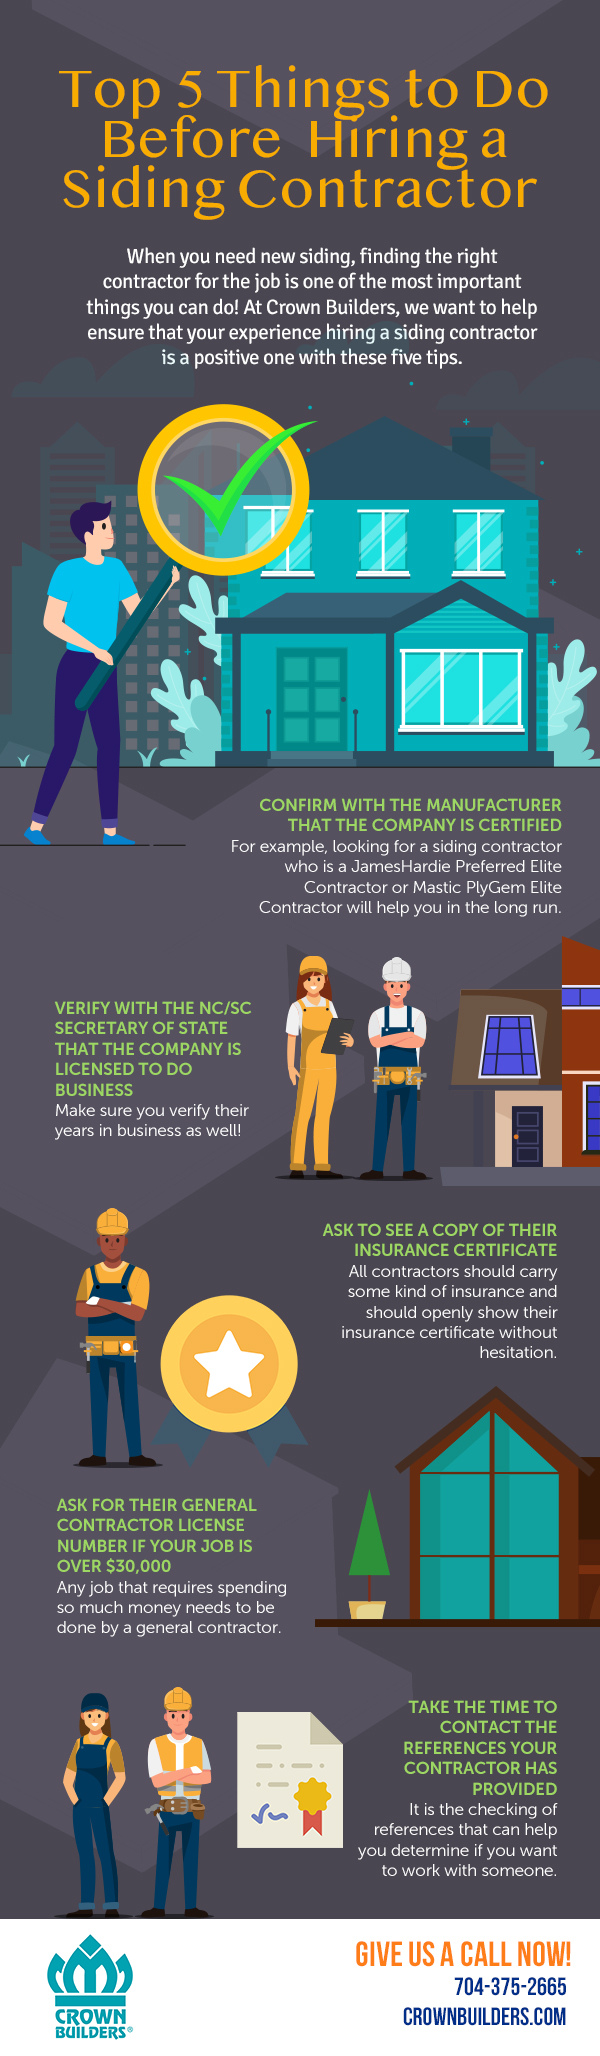 Top 5 Things to Do Before Hiring a Siding Contractor [infographic]